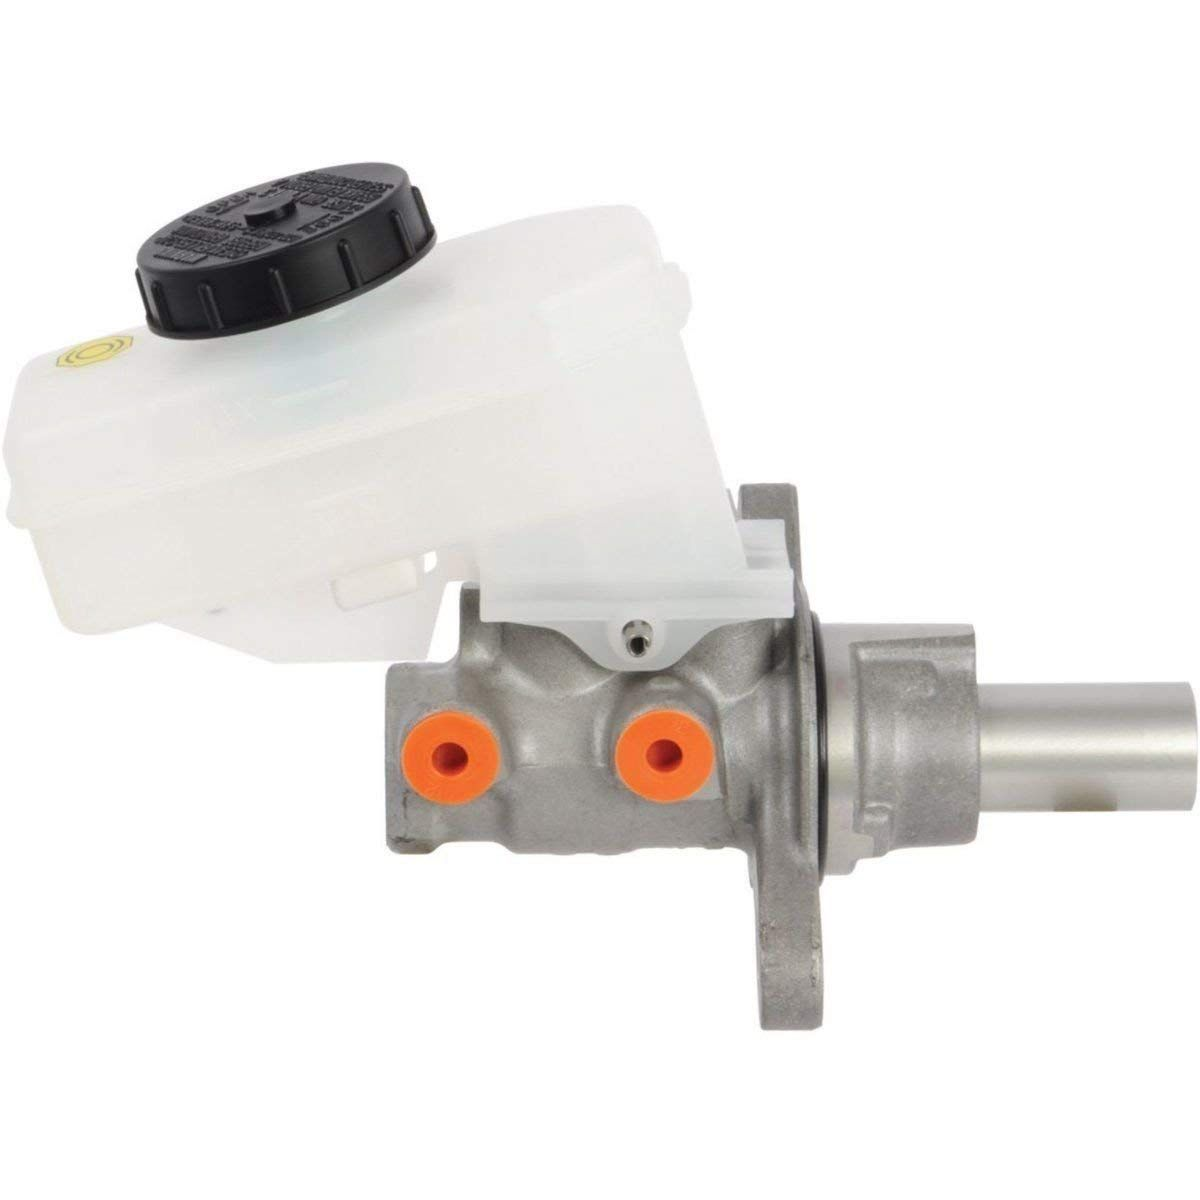 Centric Premium Brake Master Cylinder w/ Standard Non-Sport Calipers - Infiniti G35 05-06 Sedan RWD, 05-07 Coupe